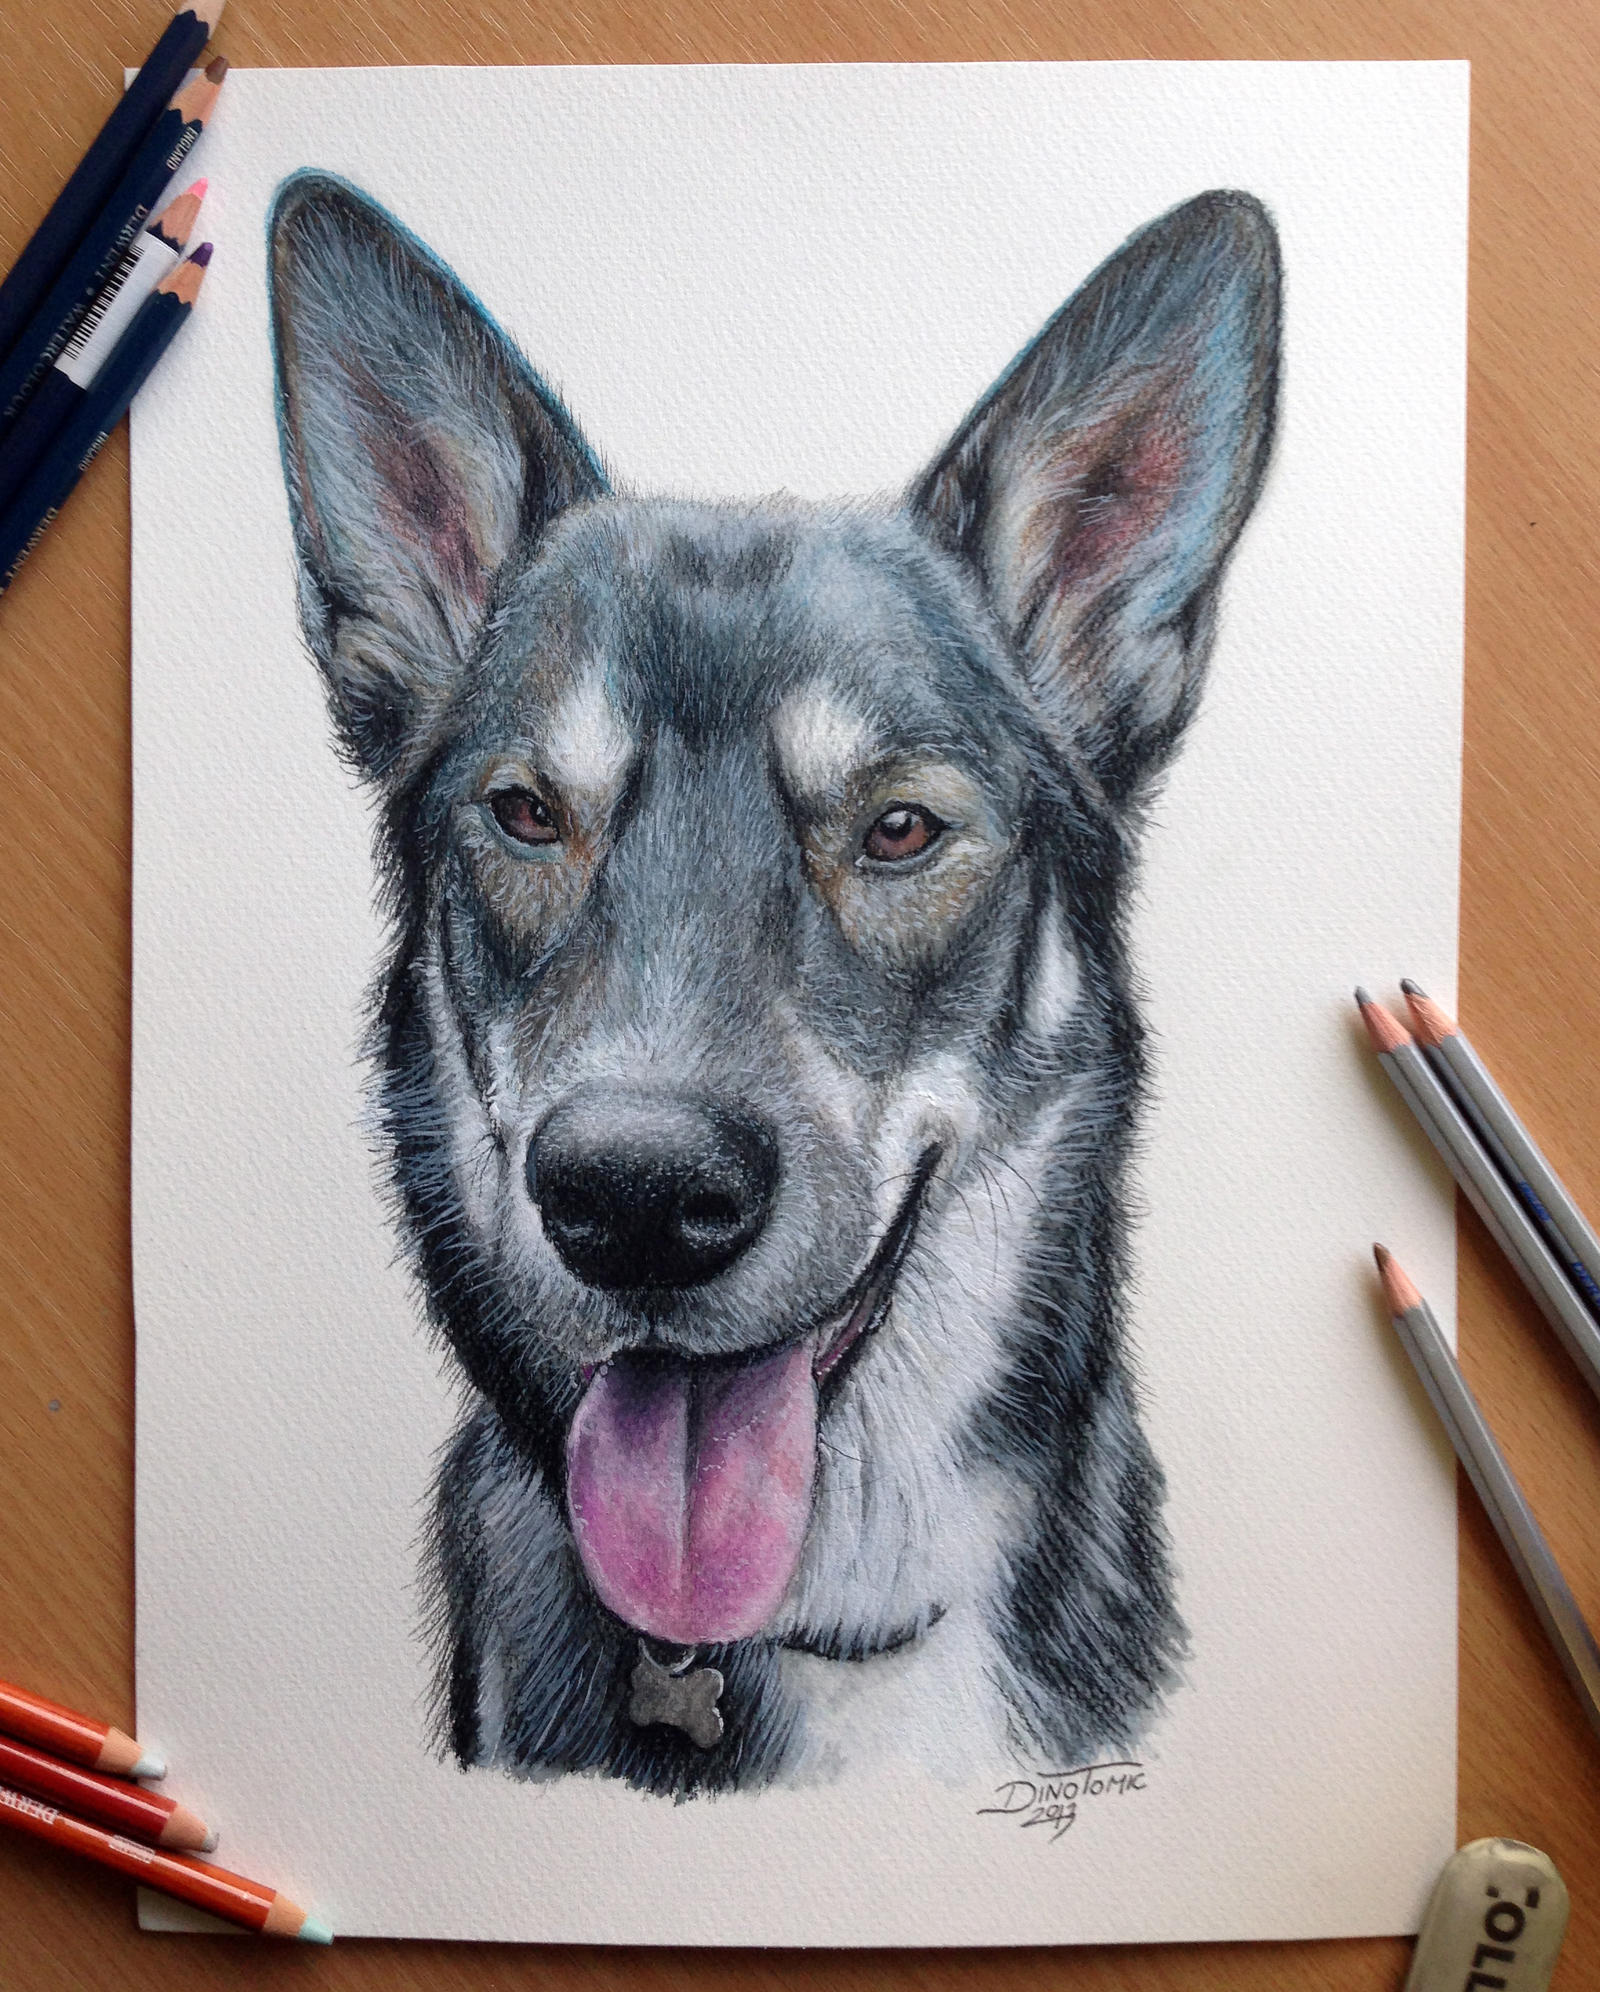 Pencil drawing of a Dog by AtomiccircuS on DeviantArt